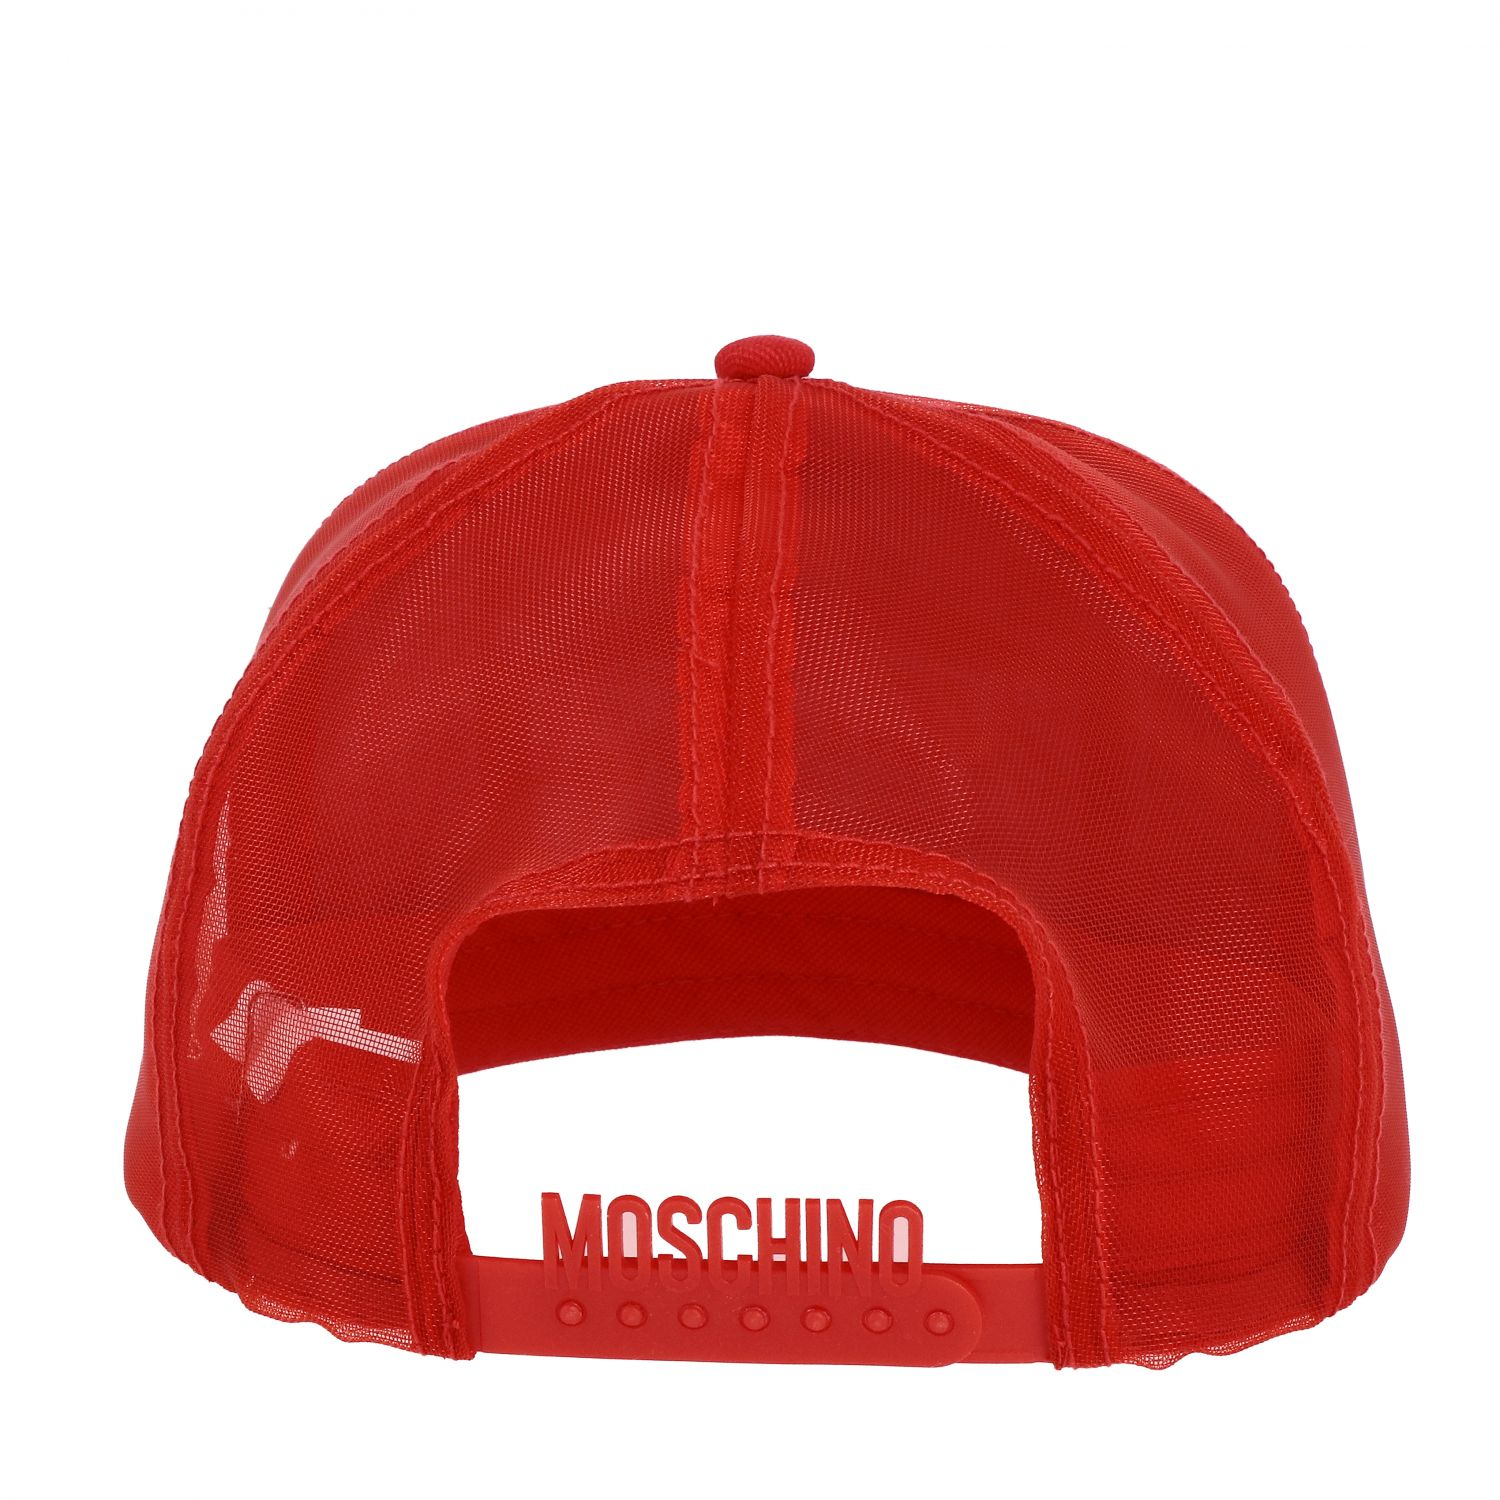 Cappello Capsule Collection Moschino X Budweiser rosso 2